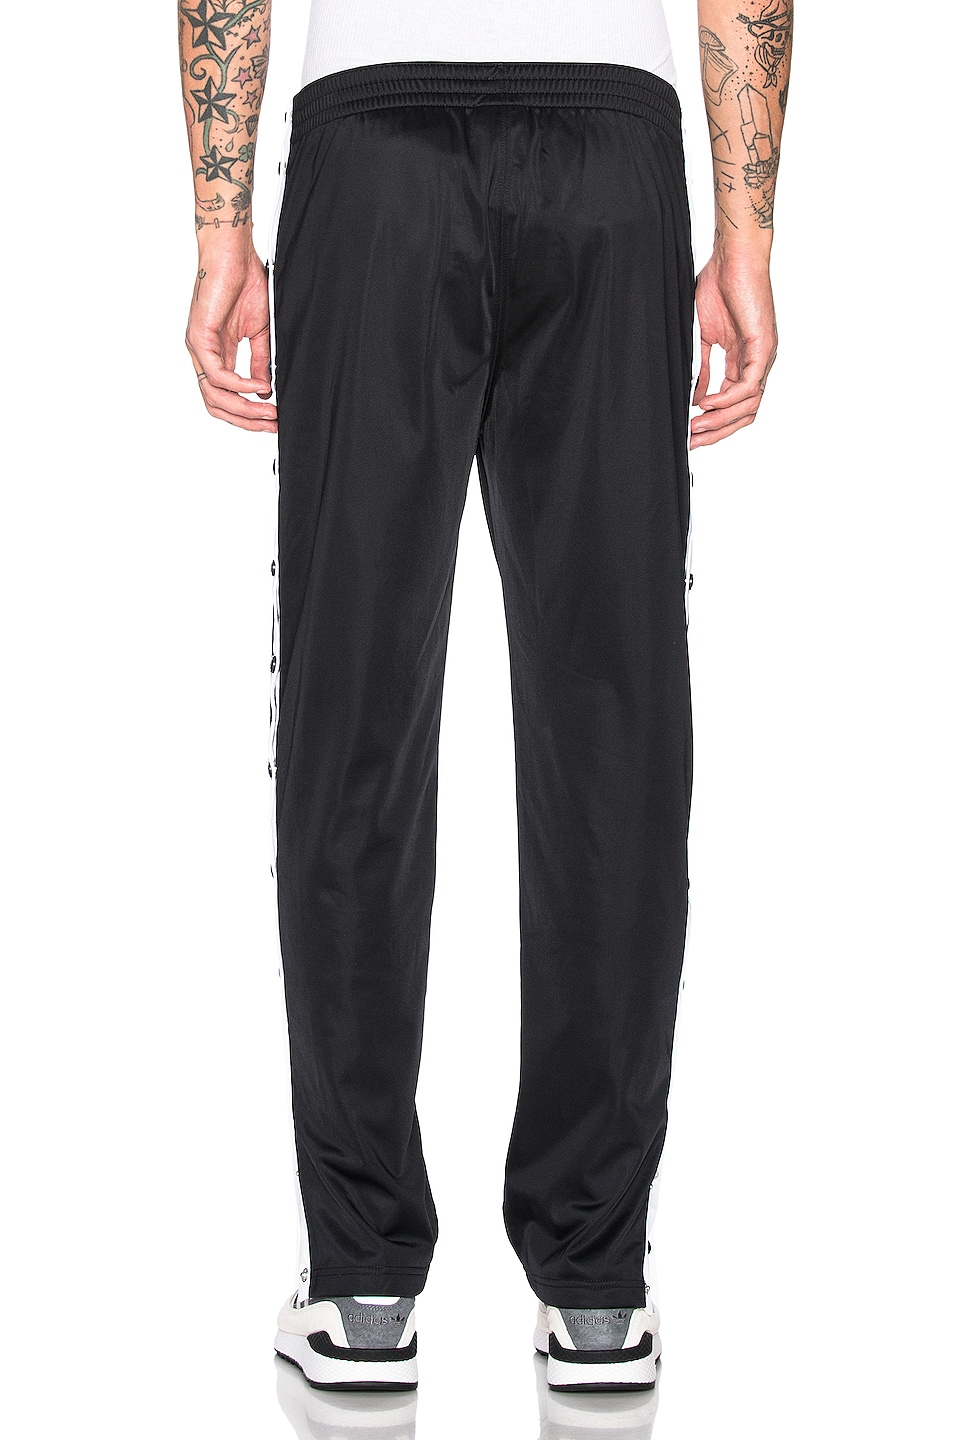 Image 4 of Champion Reverse Weave Champion Pants in Black & White